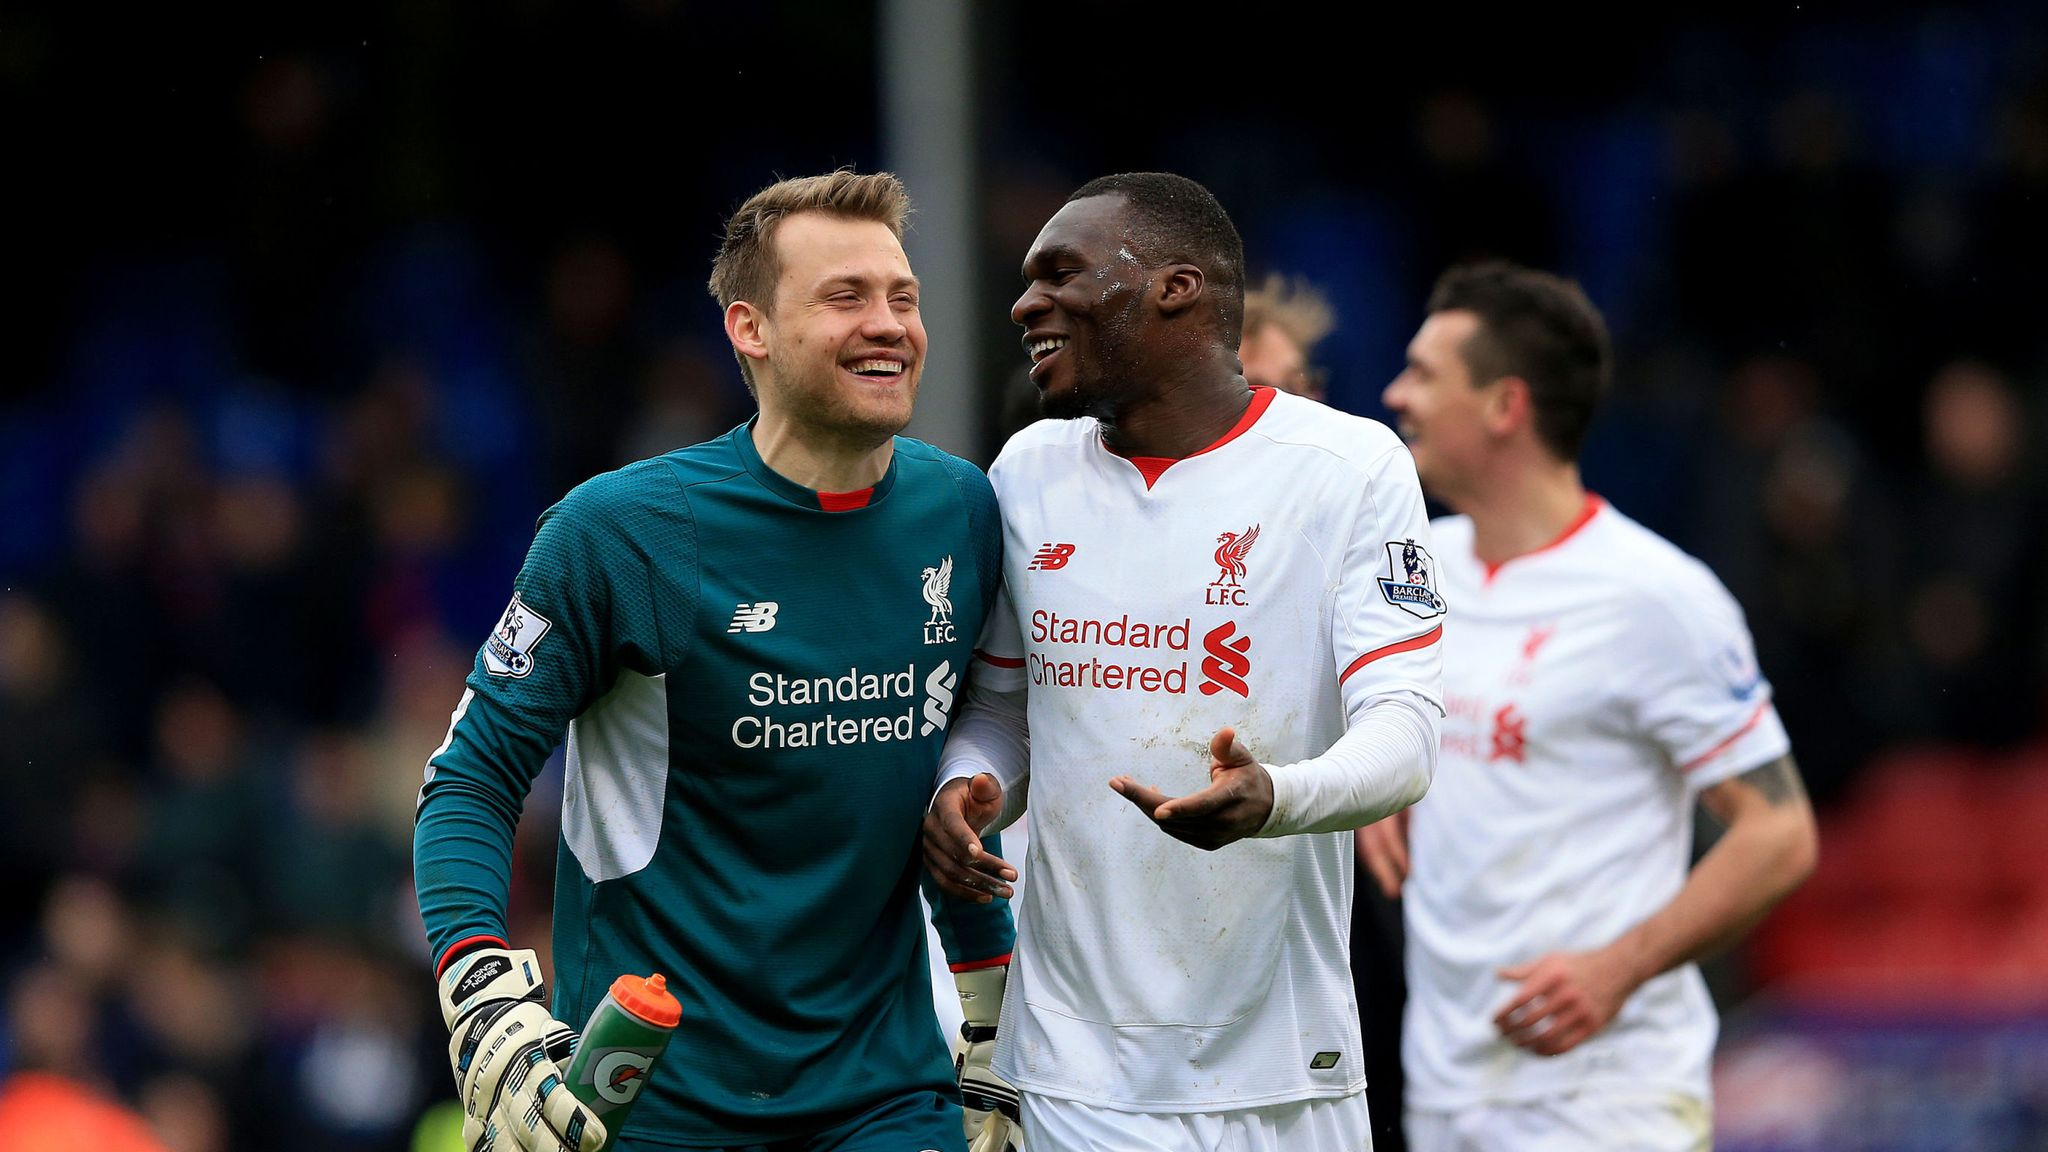 Crystal Palace 1-2 Liverpool: Five talking points after